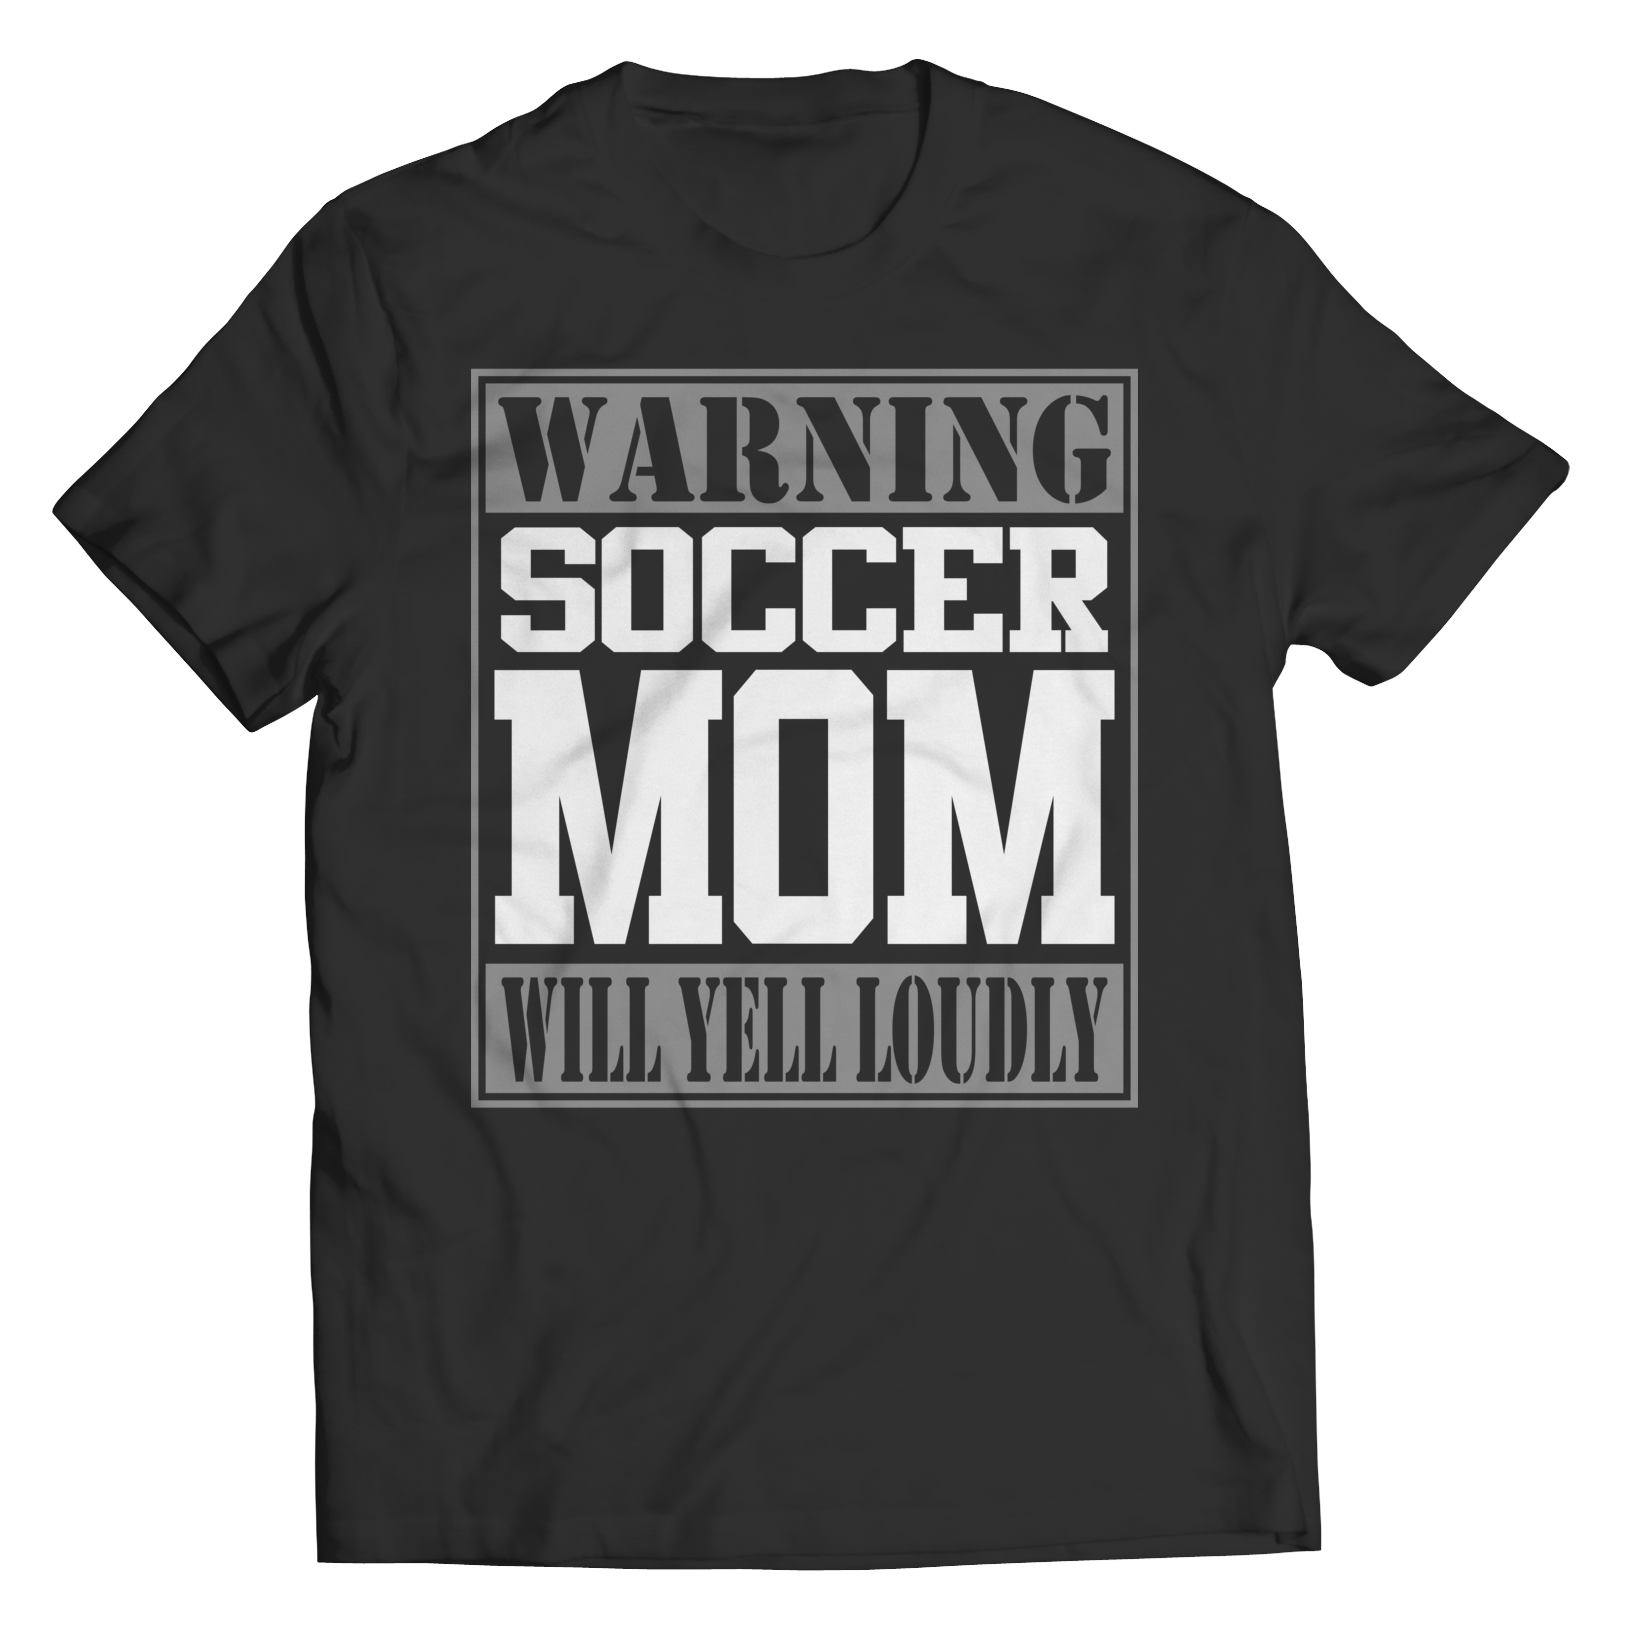 Limited Edition - Warning Soccer Mom will Yell Loudly TEE SHIRT, LONG SLEEVE SHIRT, LADIES CLASSIC TEE SHIRT, HOODIE